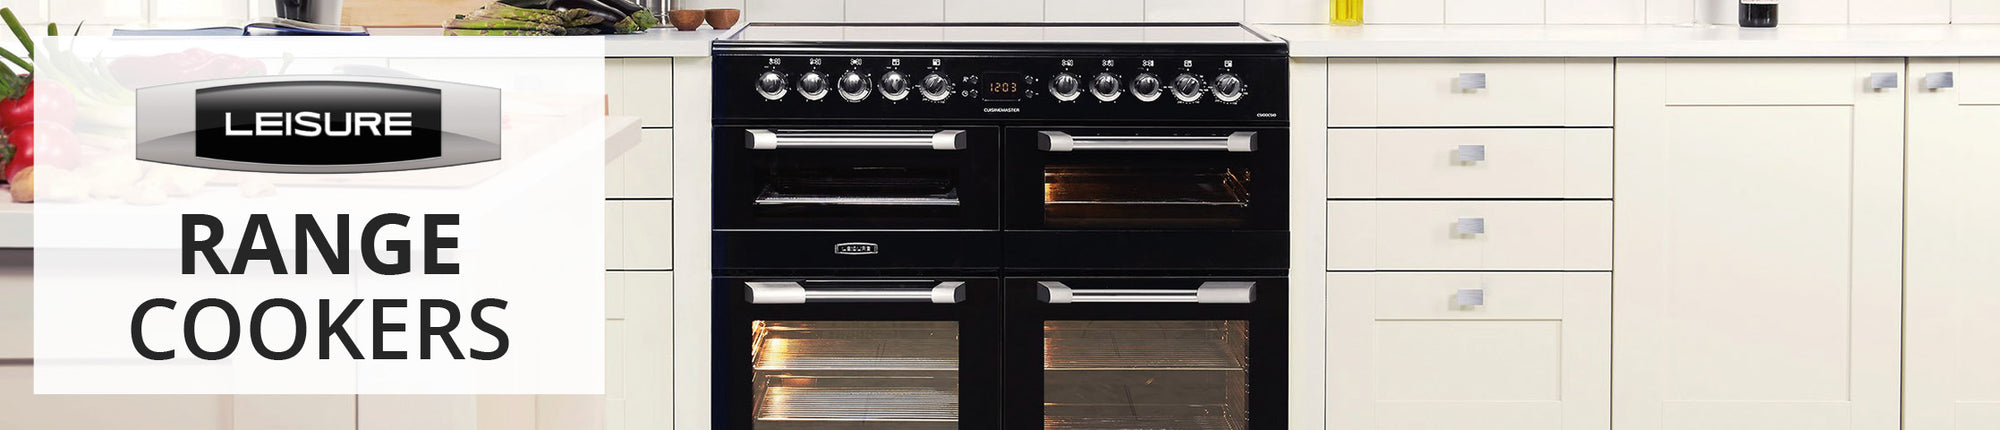 Lesiure Range Cookers